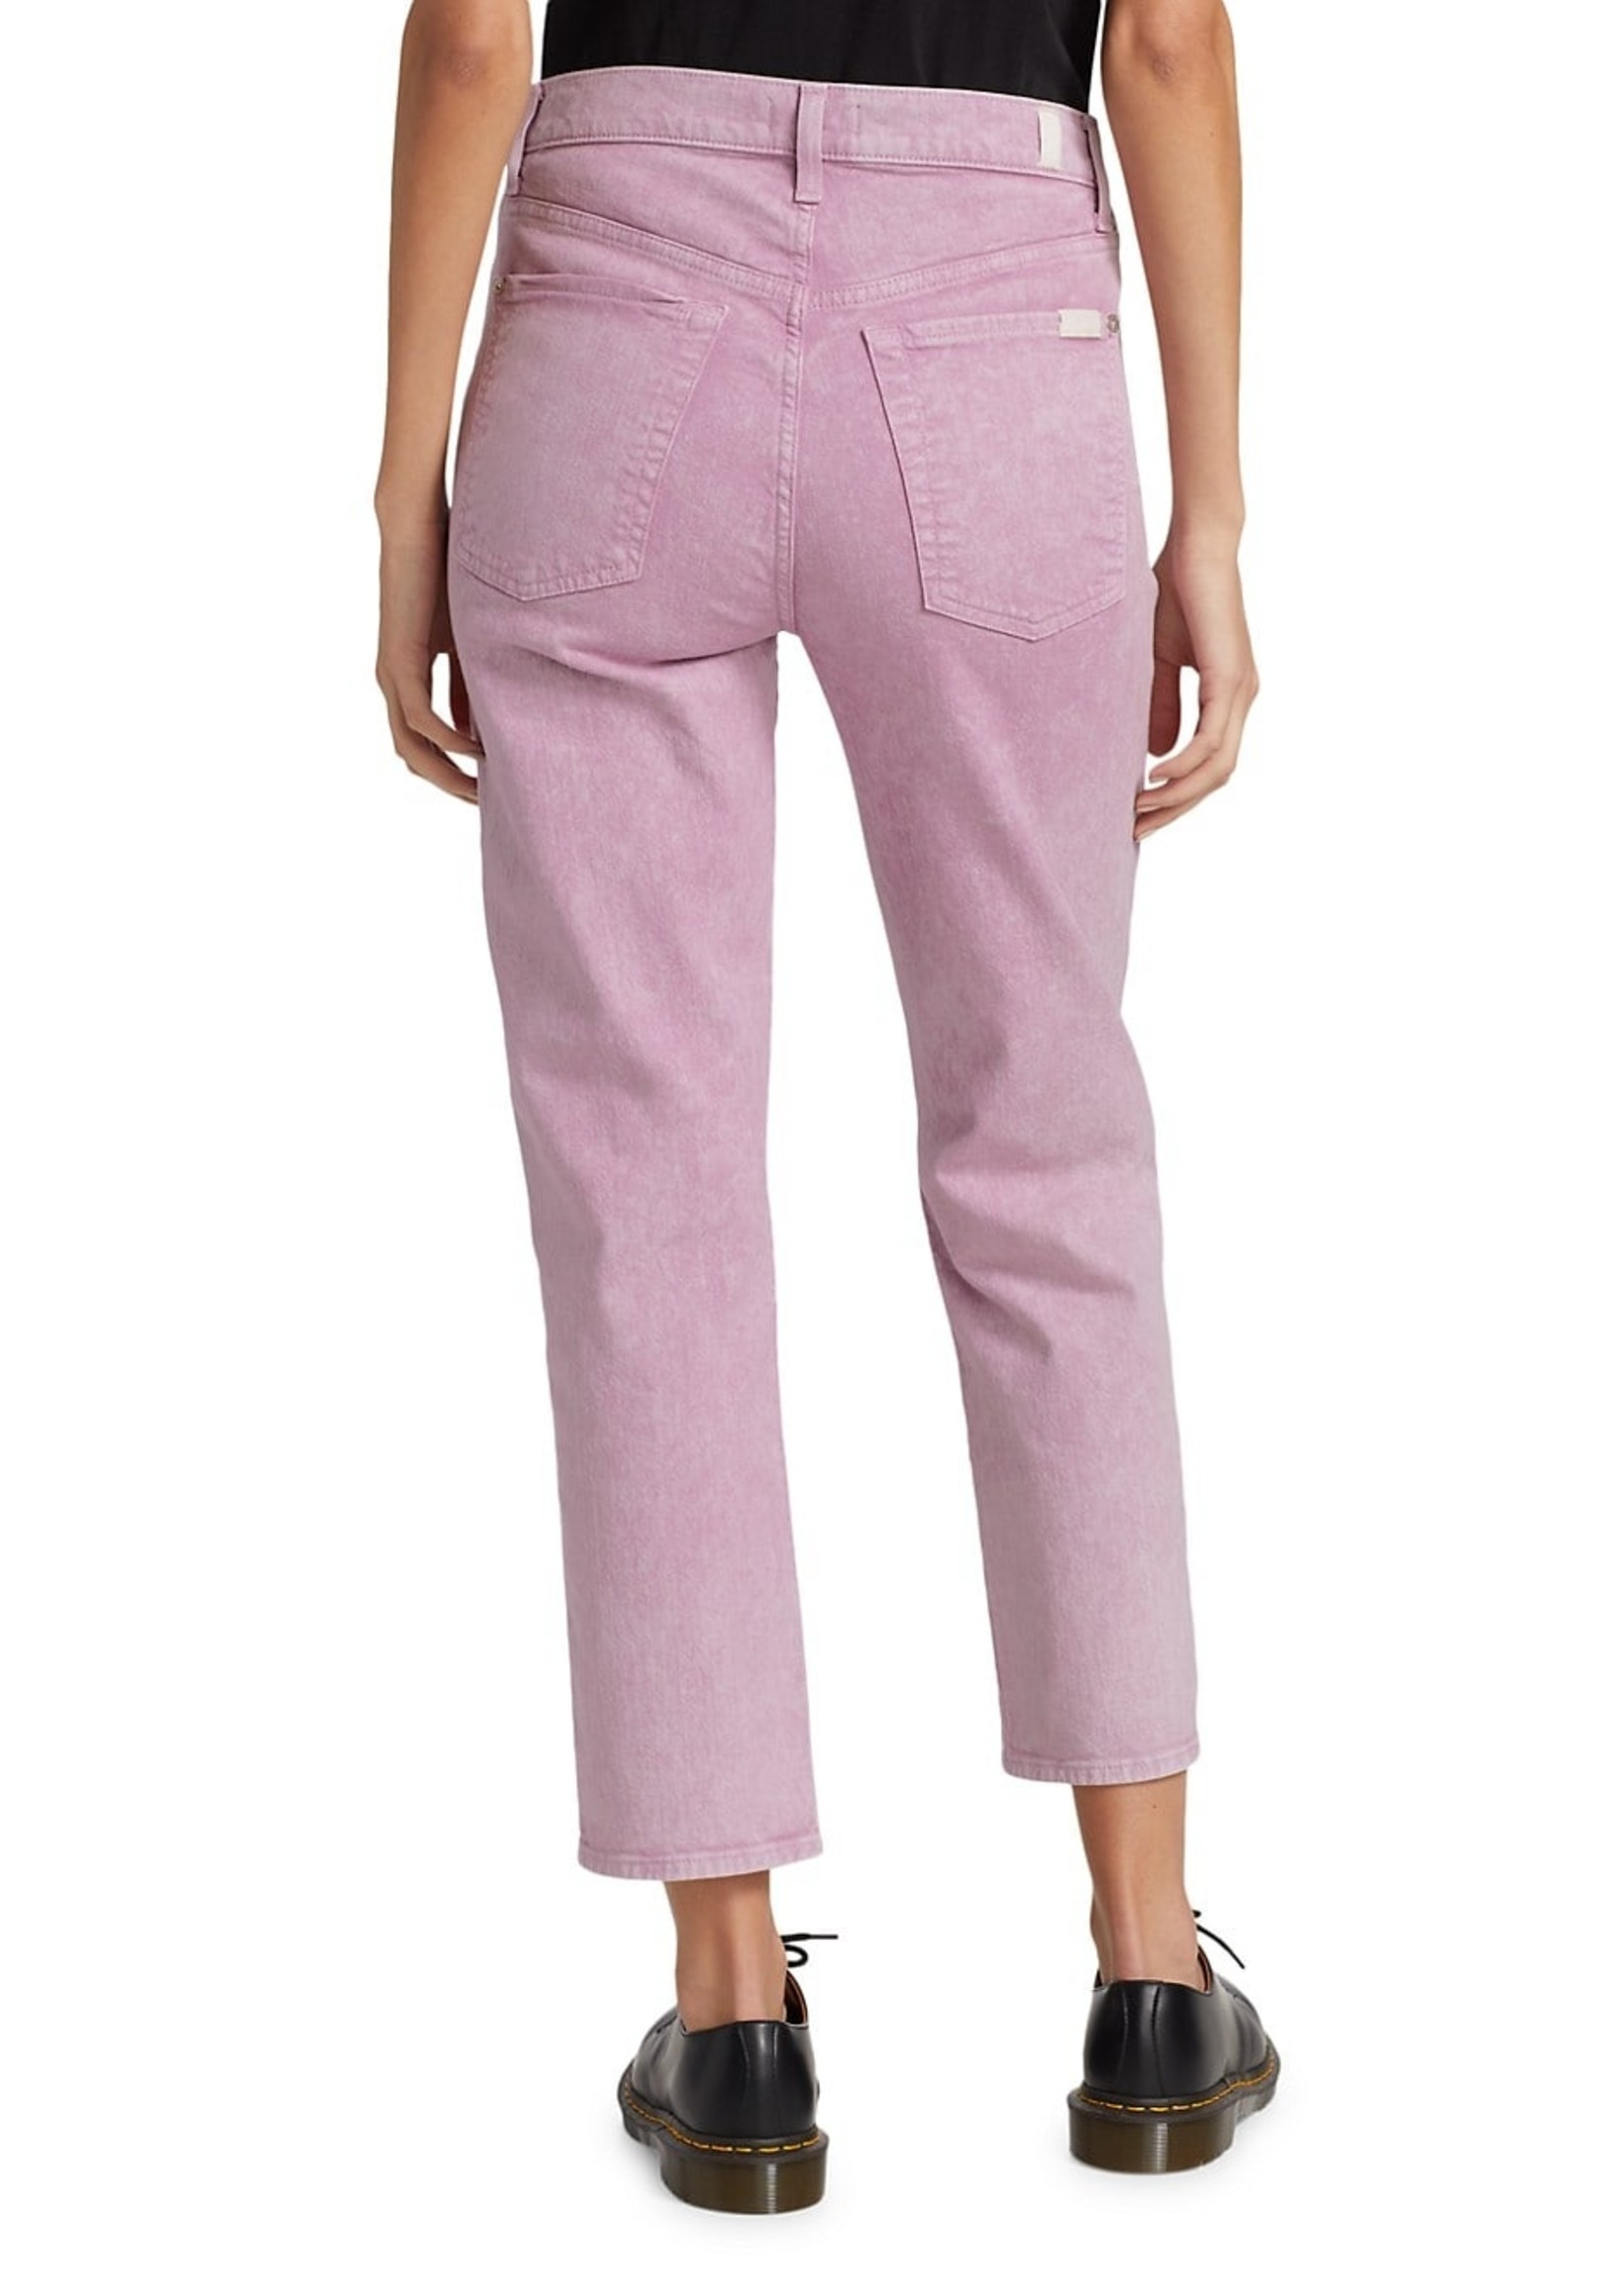 7 for all mankind Lavender Washed Cropped Jean